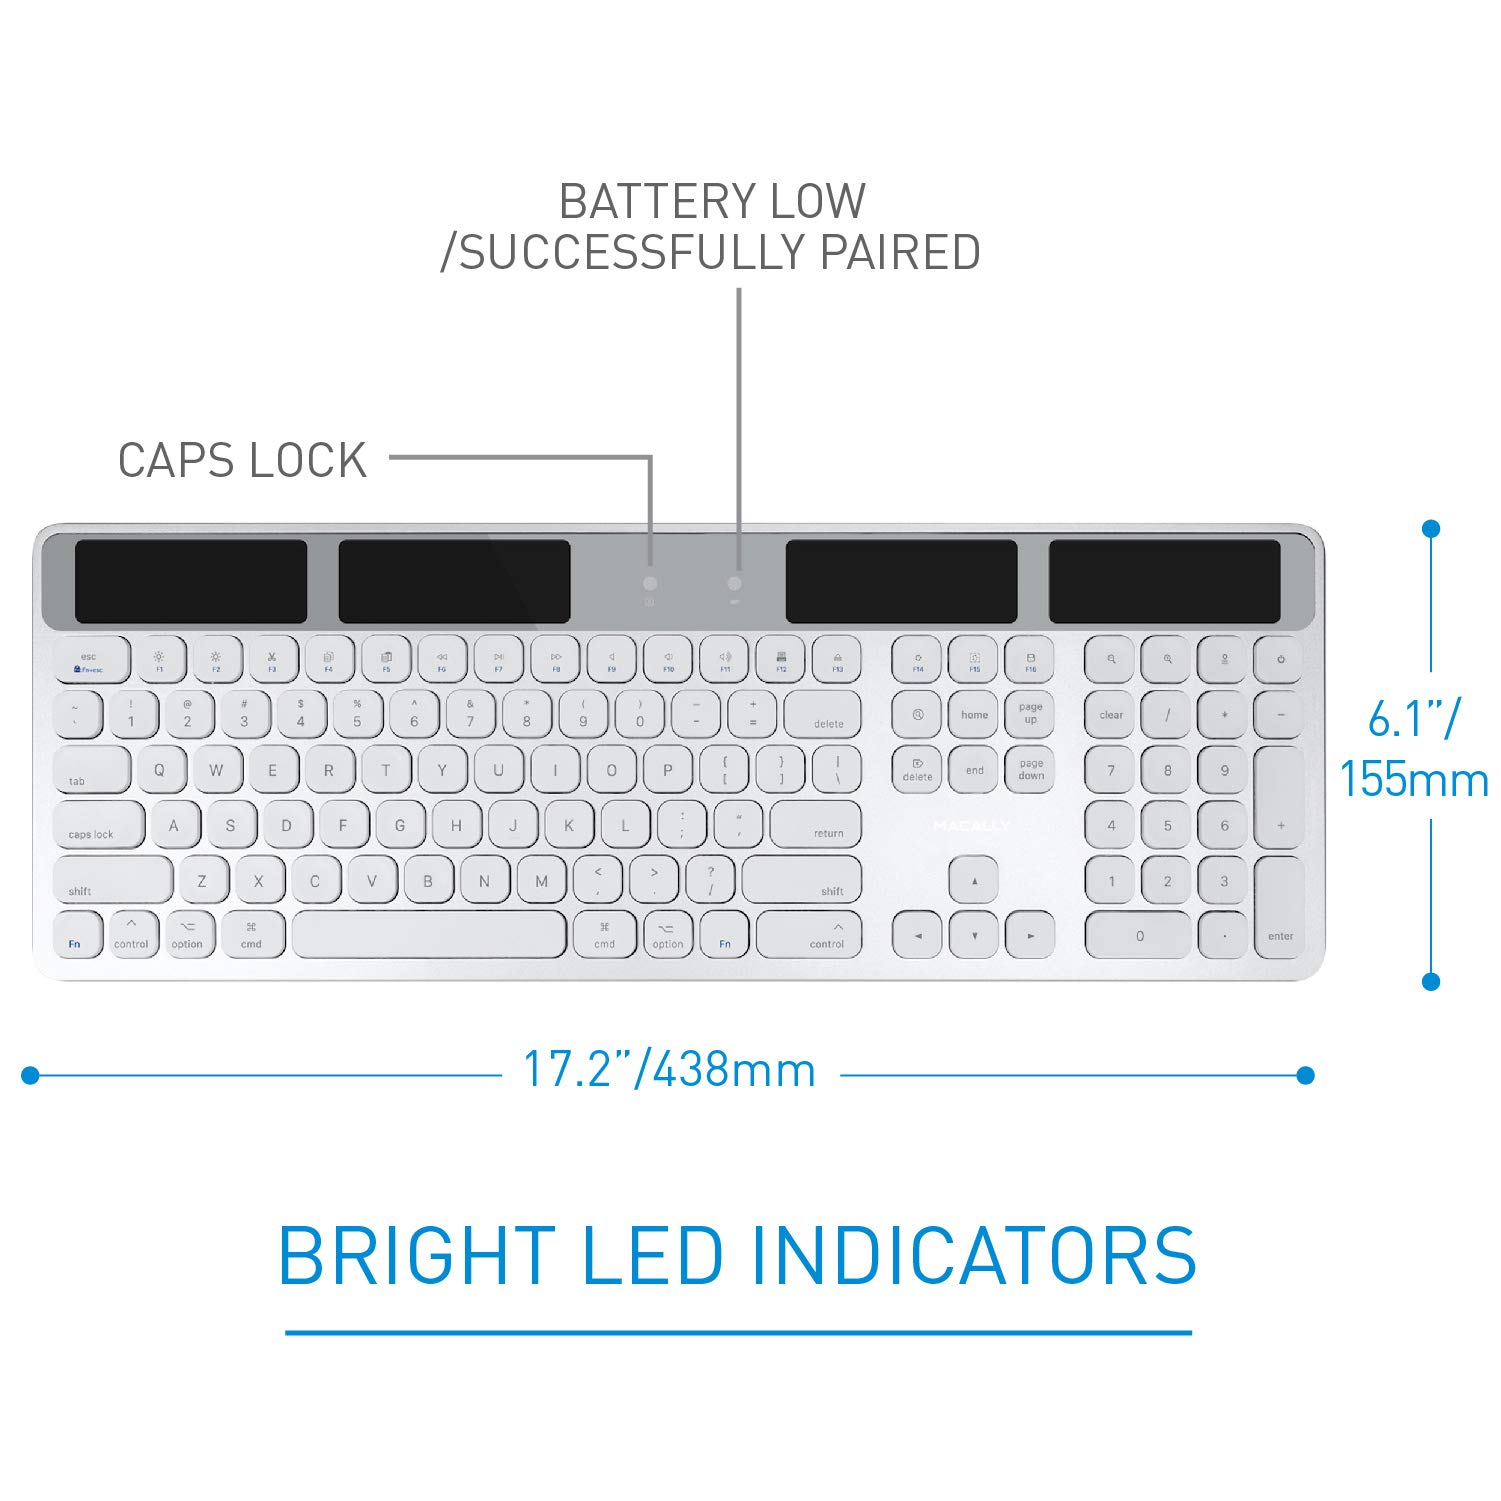 Macally Wireless Solar Keyboard for Mac Mini/Pro, iMac Desktop Computers & Apple MacBook Pro/Air Laptops | 2.4 Ghz RF USB Dongle | Caps Lock/Battery Indicators - Silver Aluminum, Gray by Macally (Image #5)